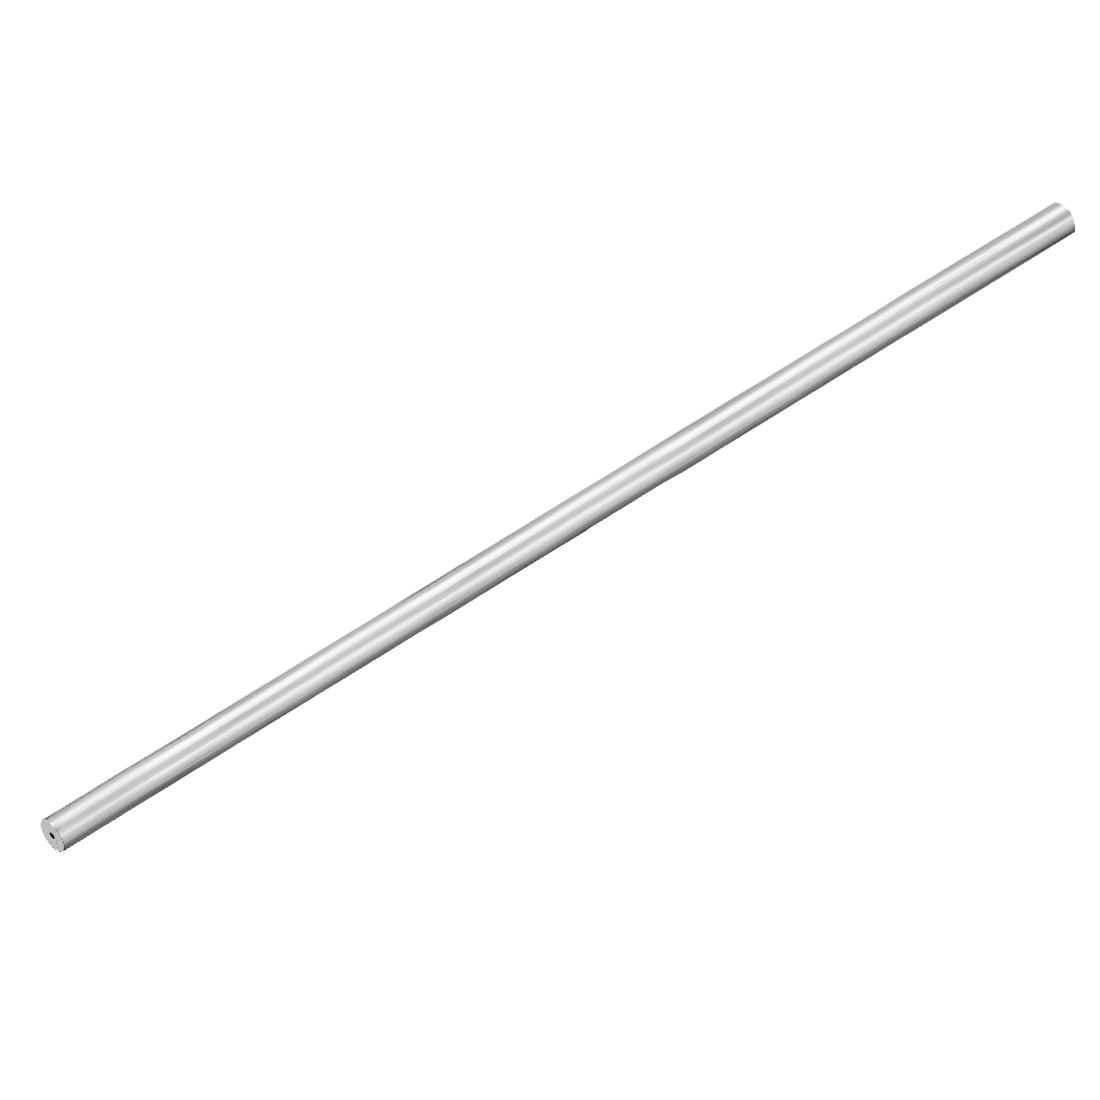 uxcell 2mm 2.5mm 3mm 4mm 5mm 6mm 7mm Id 6063 Seamless Aluminum Round Straight Tube 7mm 8mm 9mm 10mm Od 300mm Length|Tool Parts| |  - title=